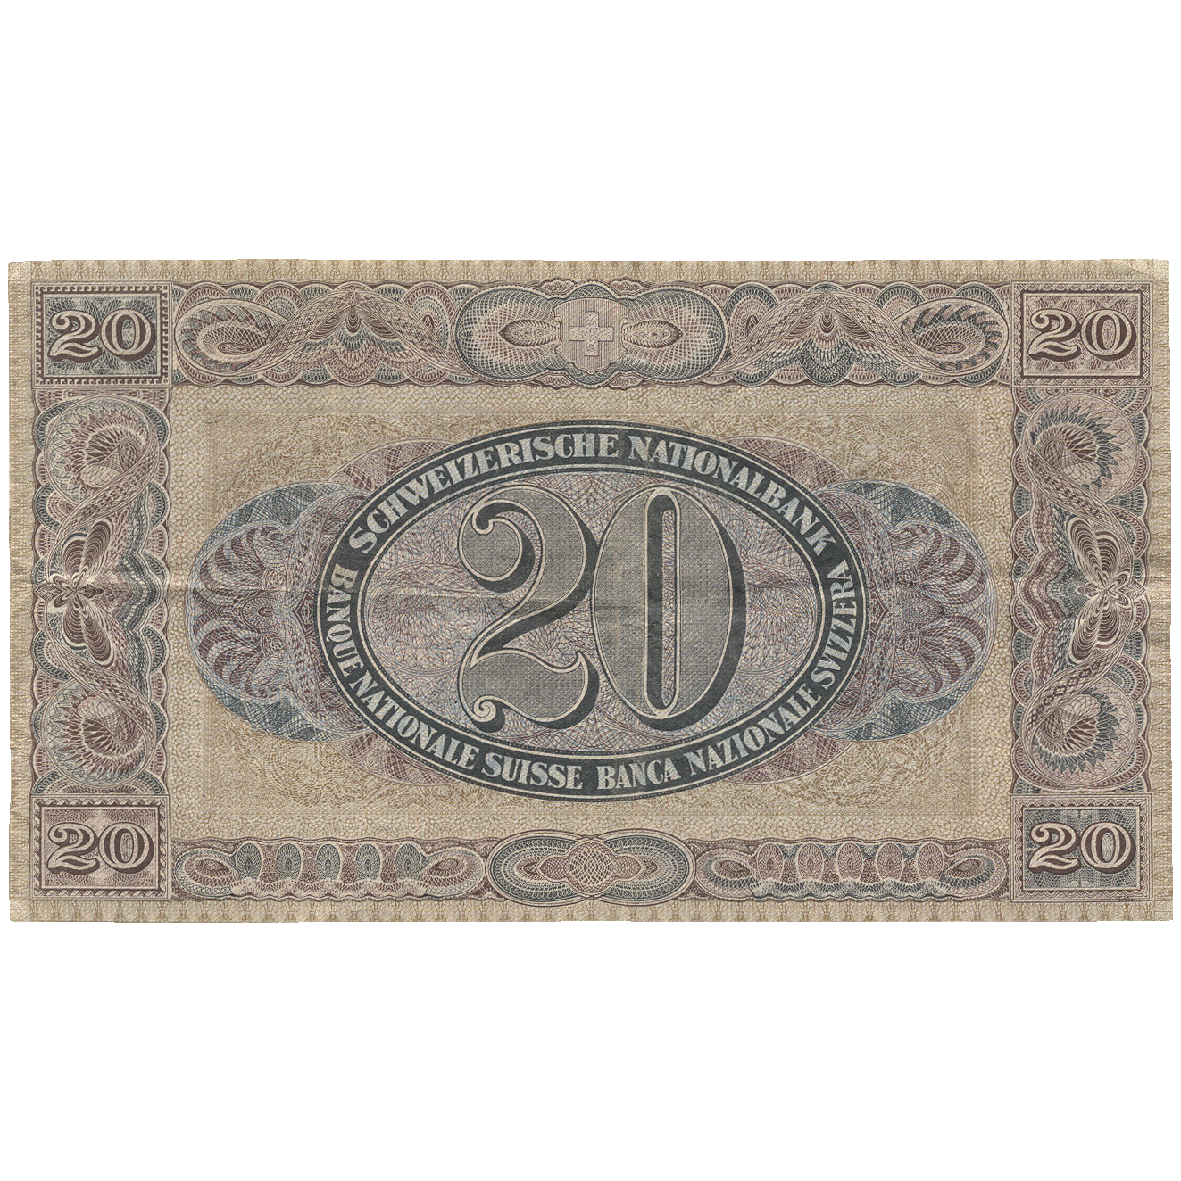 Swiss Conferderation, Swiss National Bank, 20 Franks 1927 (reverse)